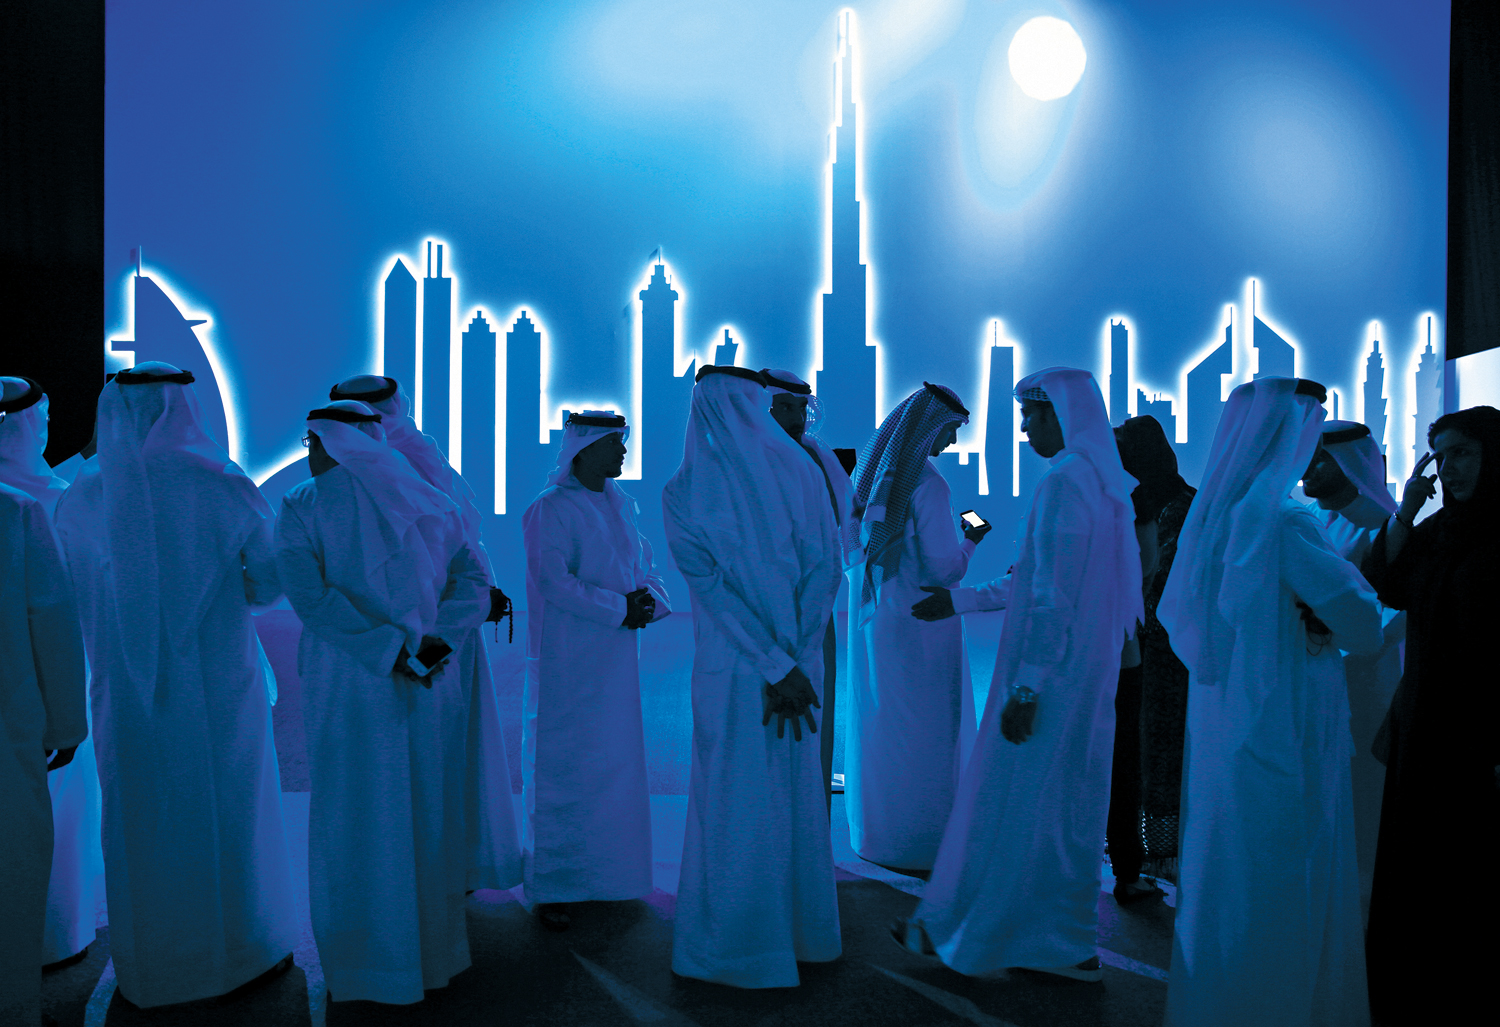 Emirati-attendees-wait-in-front-of-an-image-of-the-city's-skyline-in-Dubai-on-March-5-2014